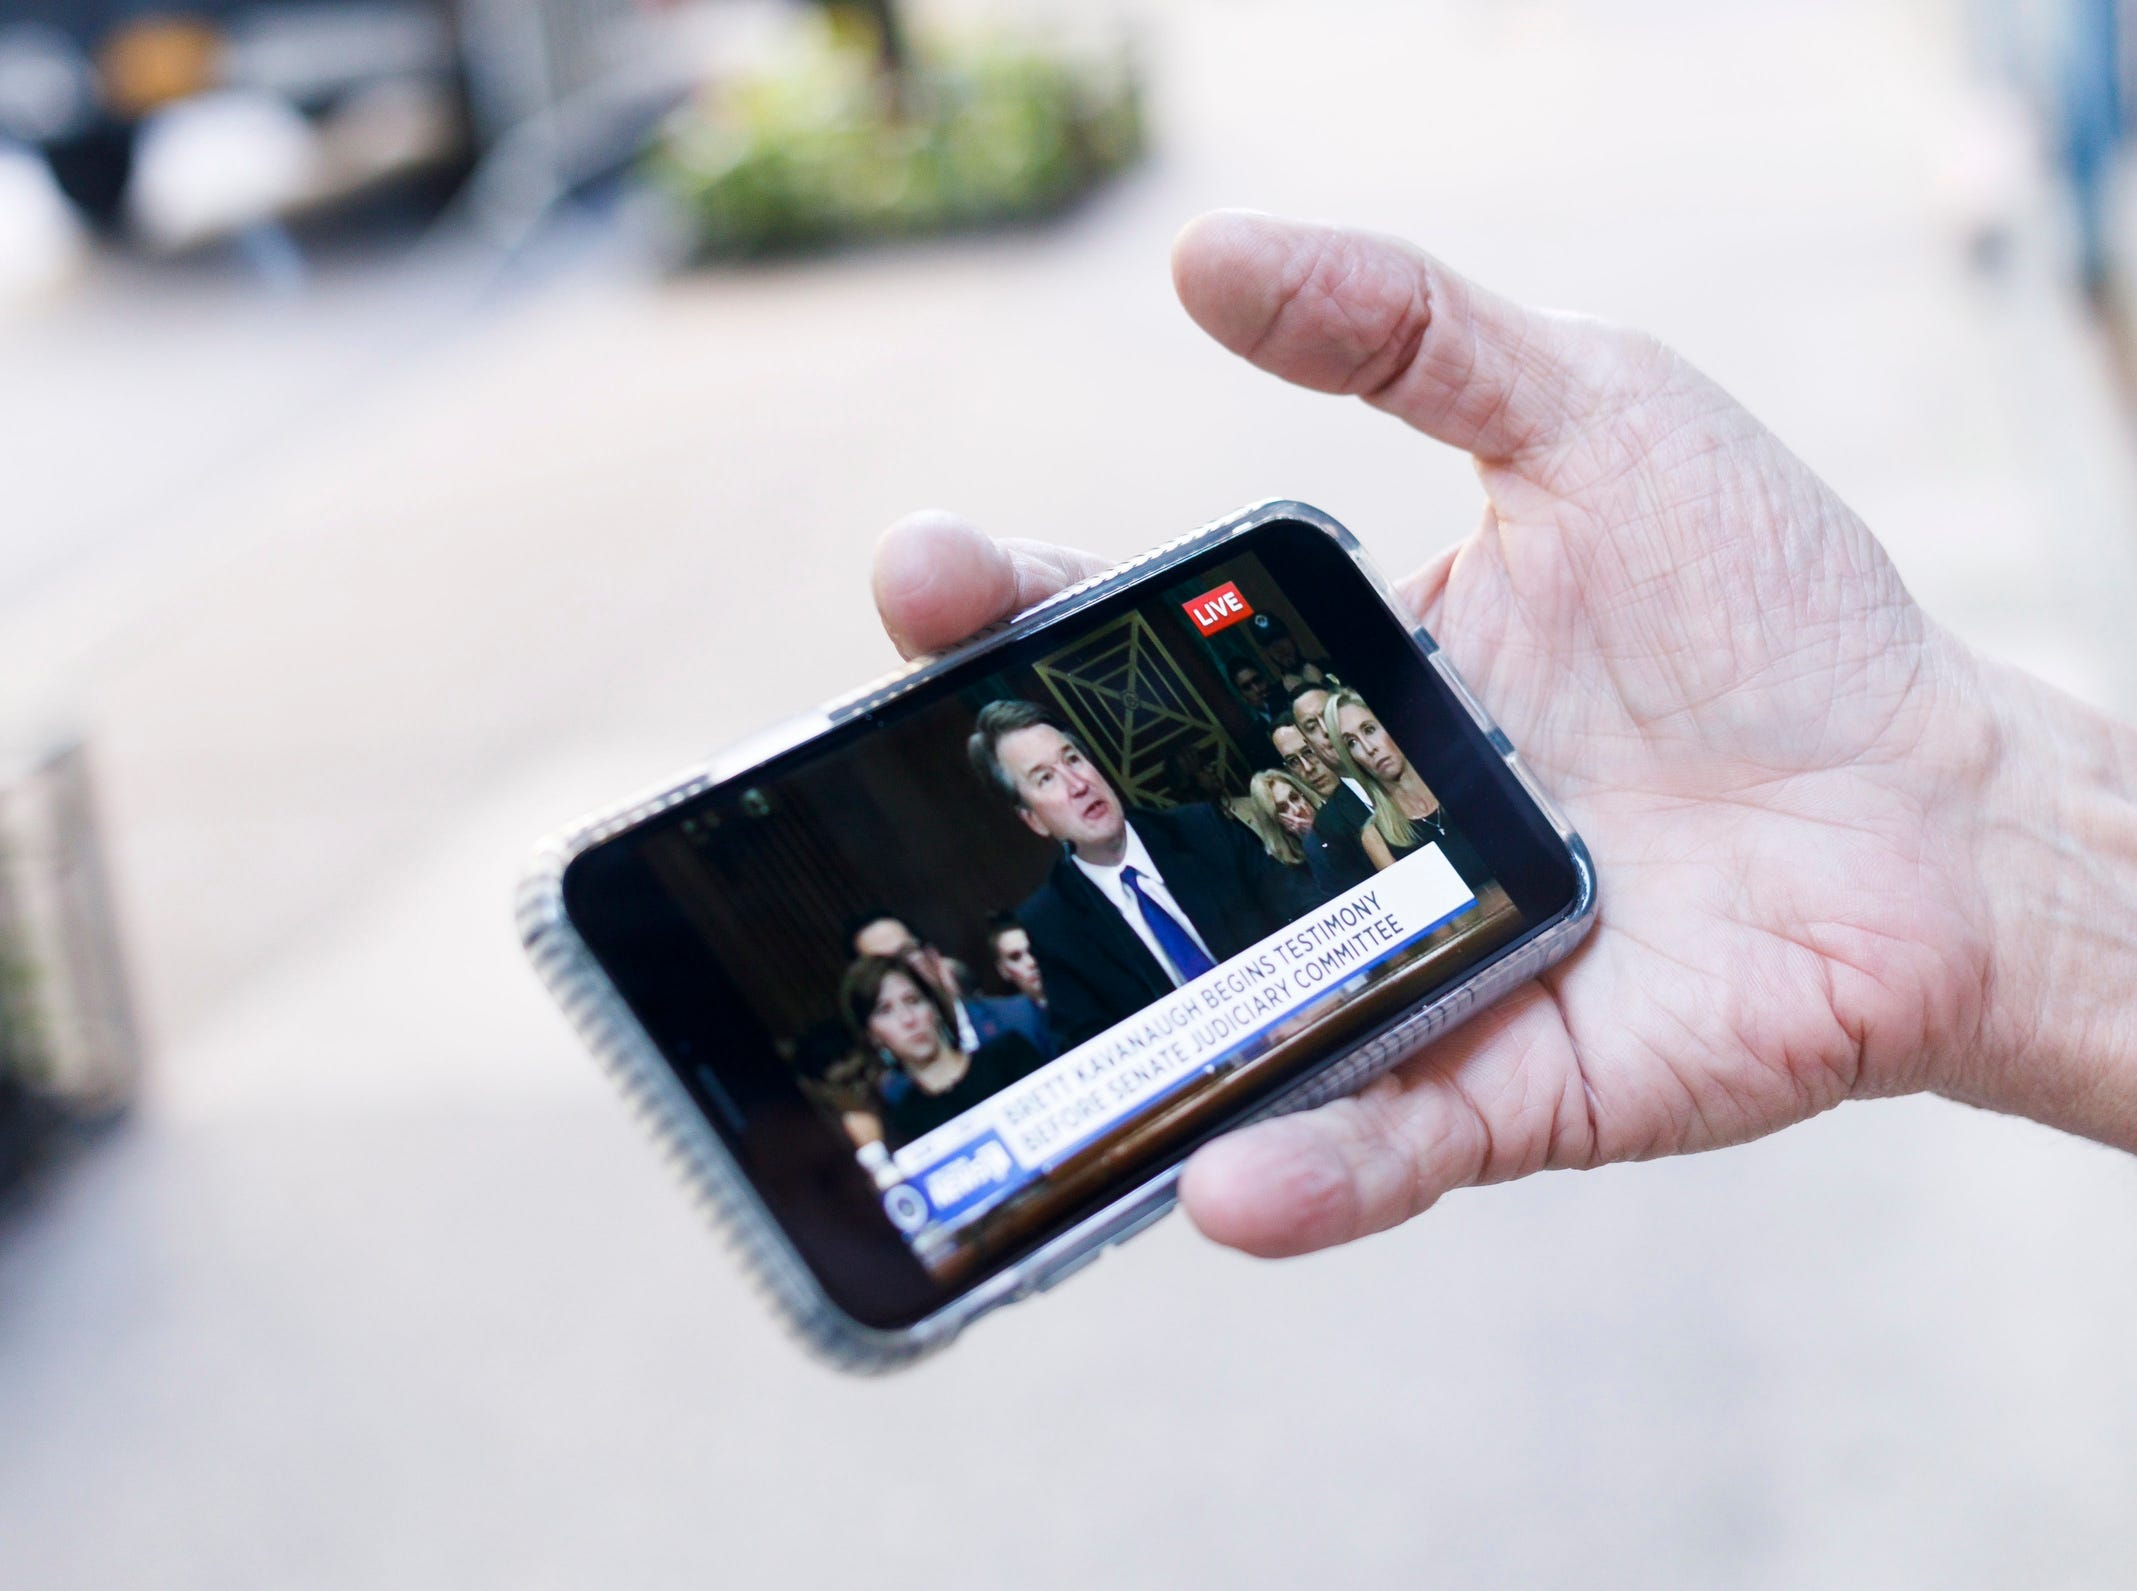 Steven Dupler of New York watches the congressional hearing taking place in Washington DC with Supreme Court nominee Judge Brett Kavanaugh and Christine Blasey Ford, who has accused Kavanaugh of sexual assault, on his phone while standing on the sidewalk in New York.